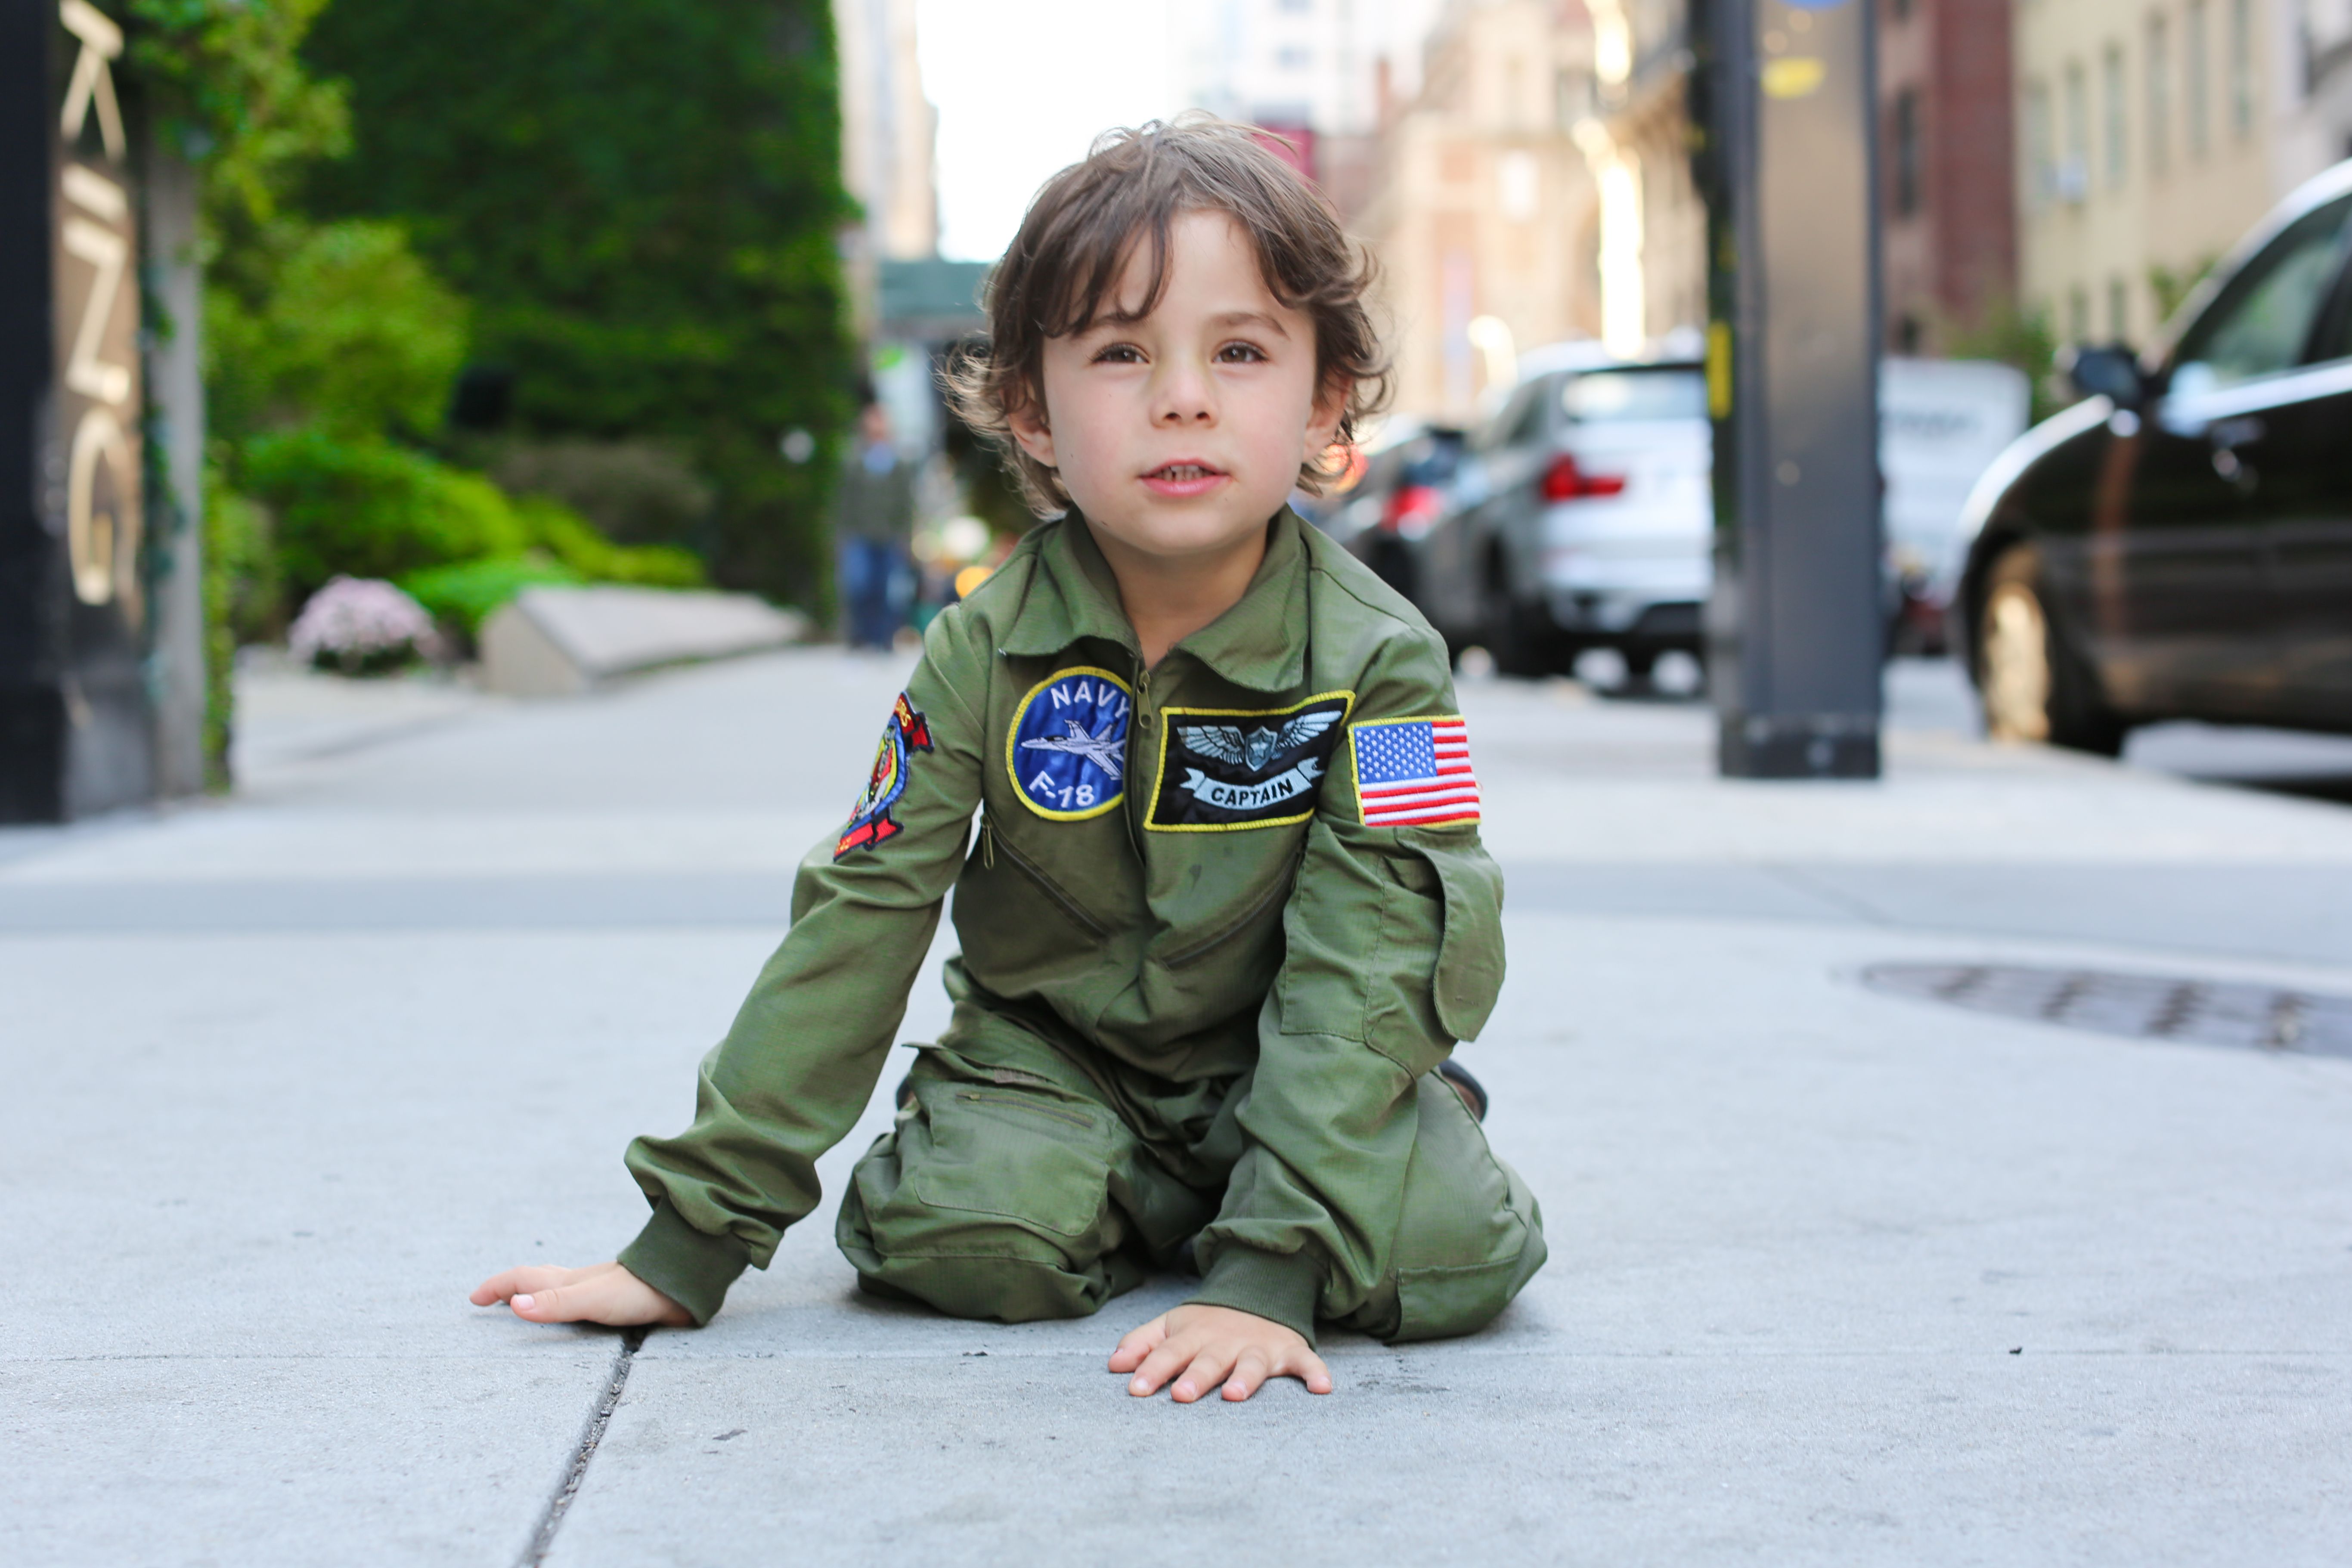 """""""Why are you wearing a pilot's outfit?                                                                I wear it every day.                                                                Do you want to be a pilot when you grow up?                                                                No, I want to be a teacher.                                                                Why aren't you wearing a teacher's outfit?                                                                I don't have one."""